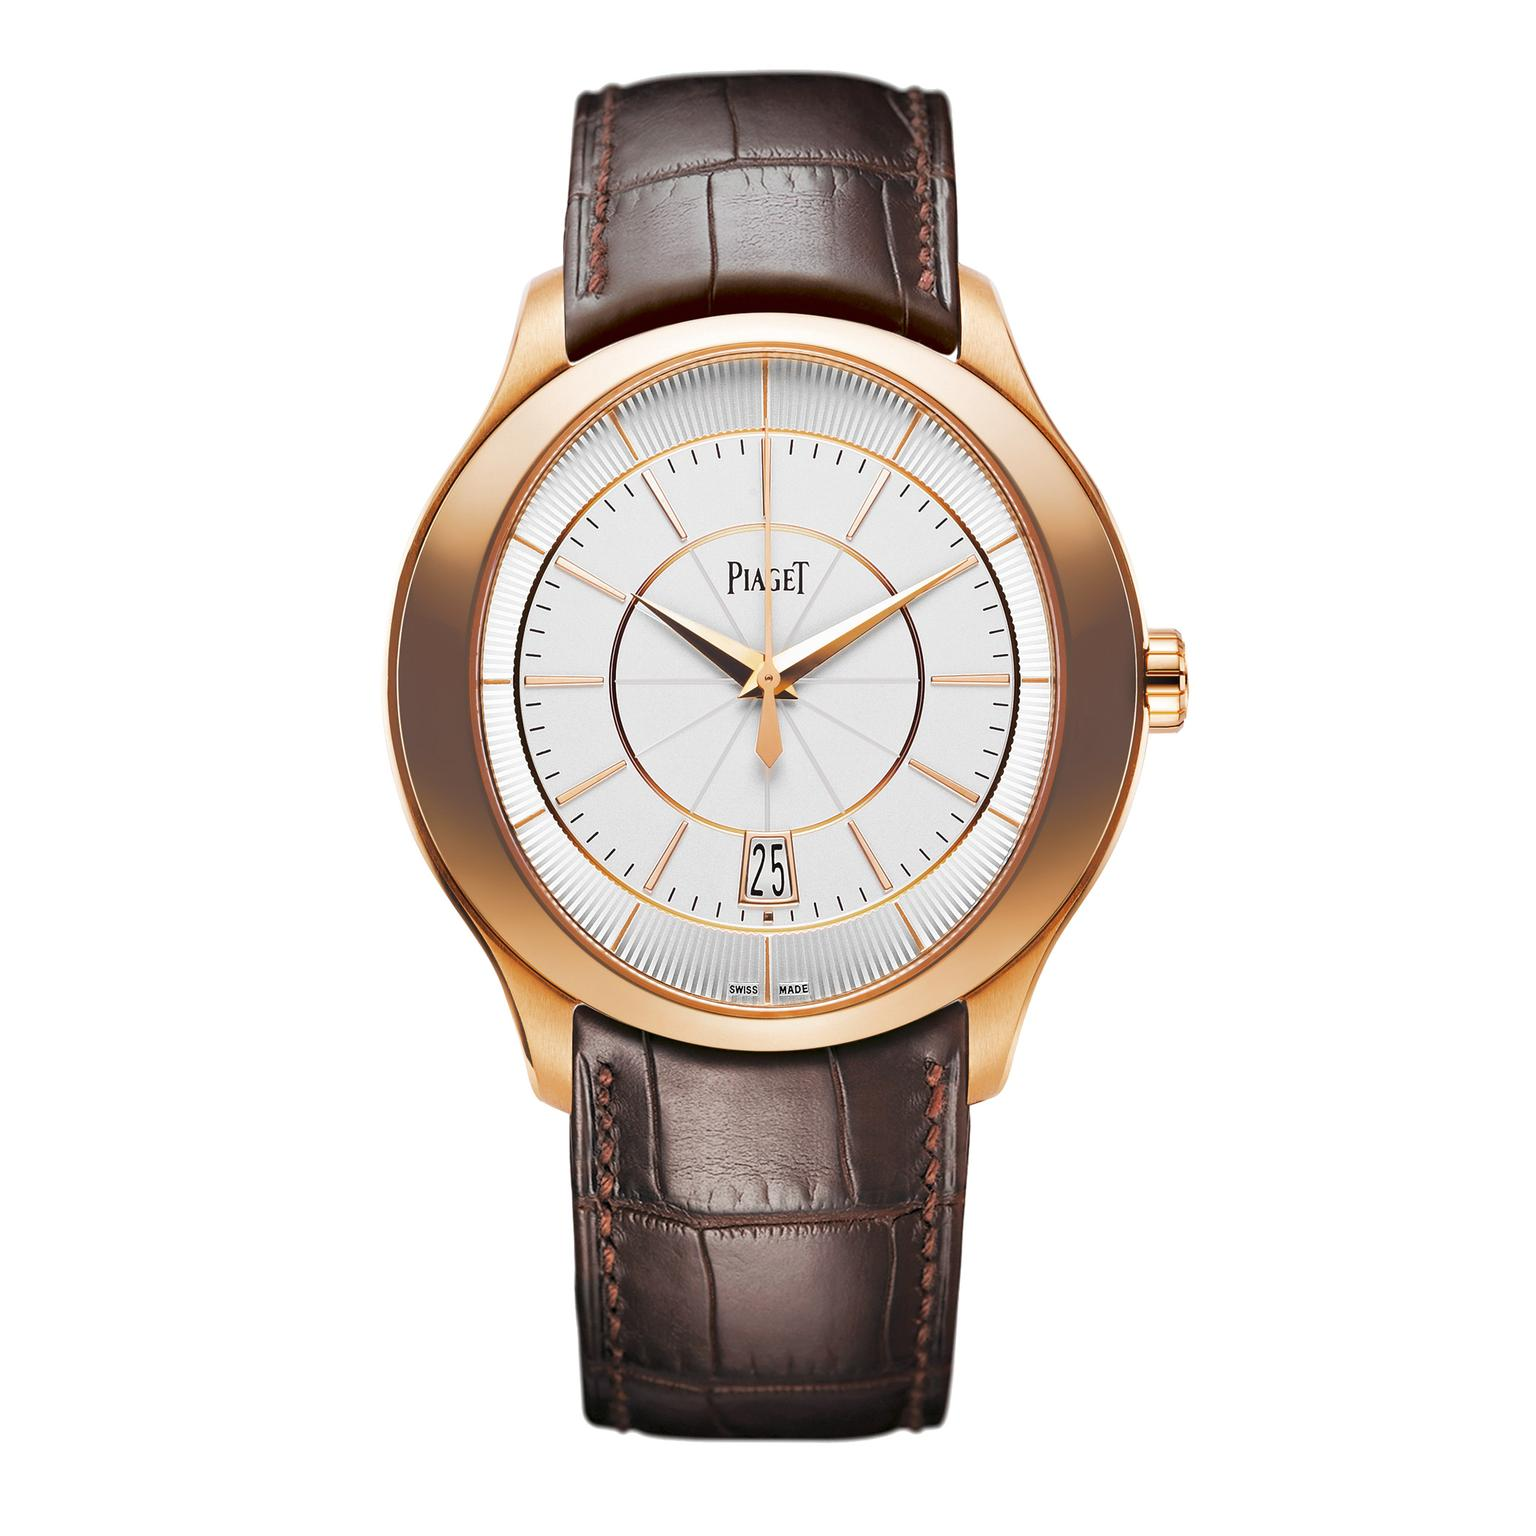 Piaget-Governeur-Watch-Zoom